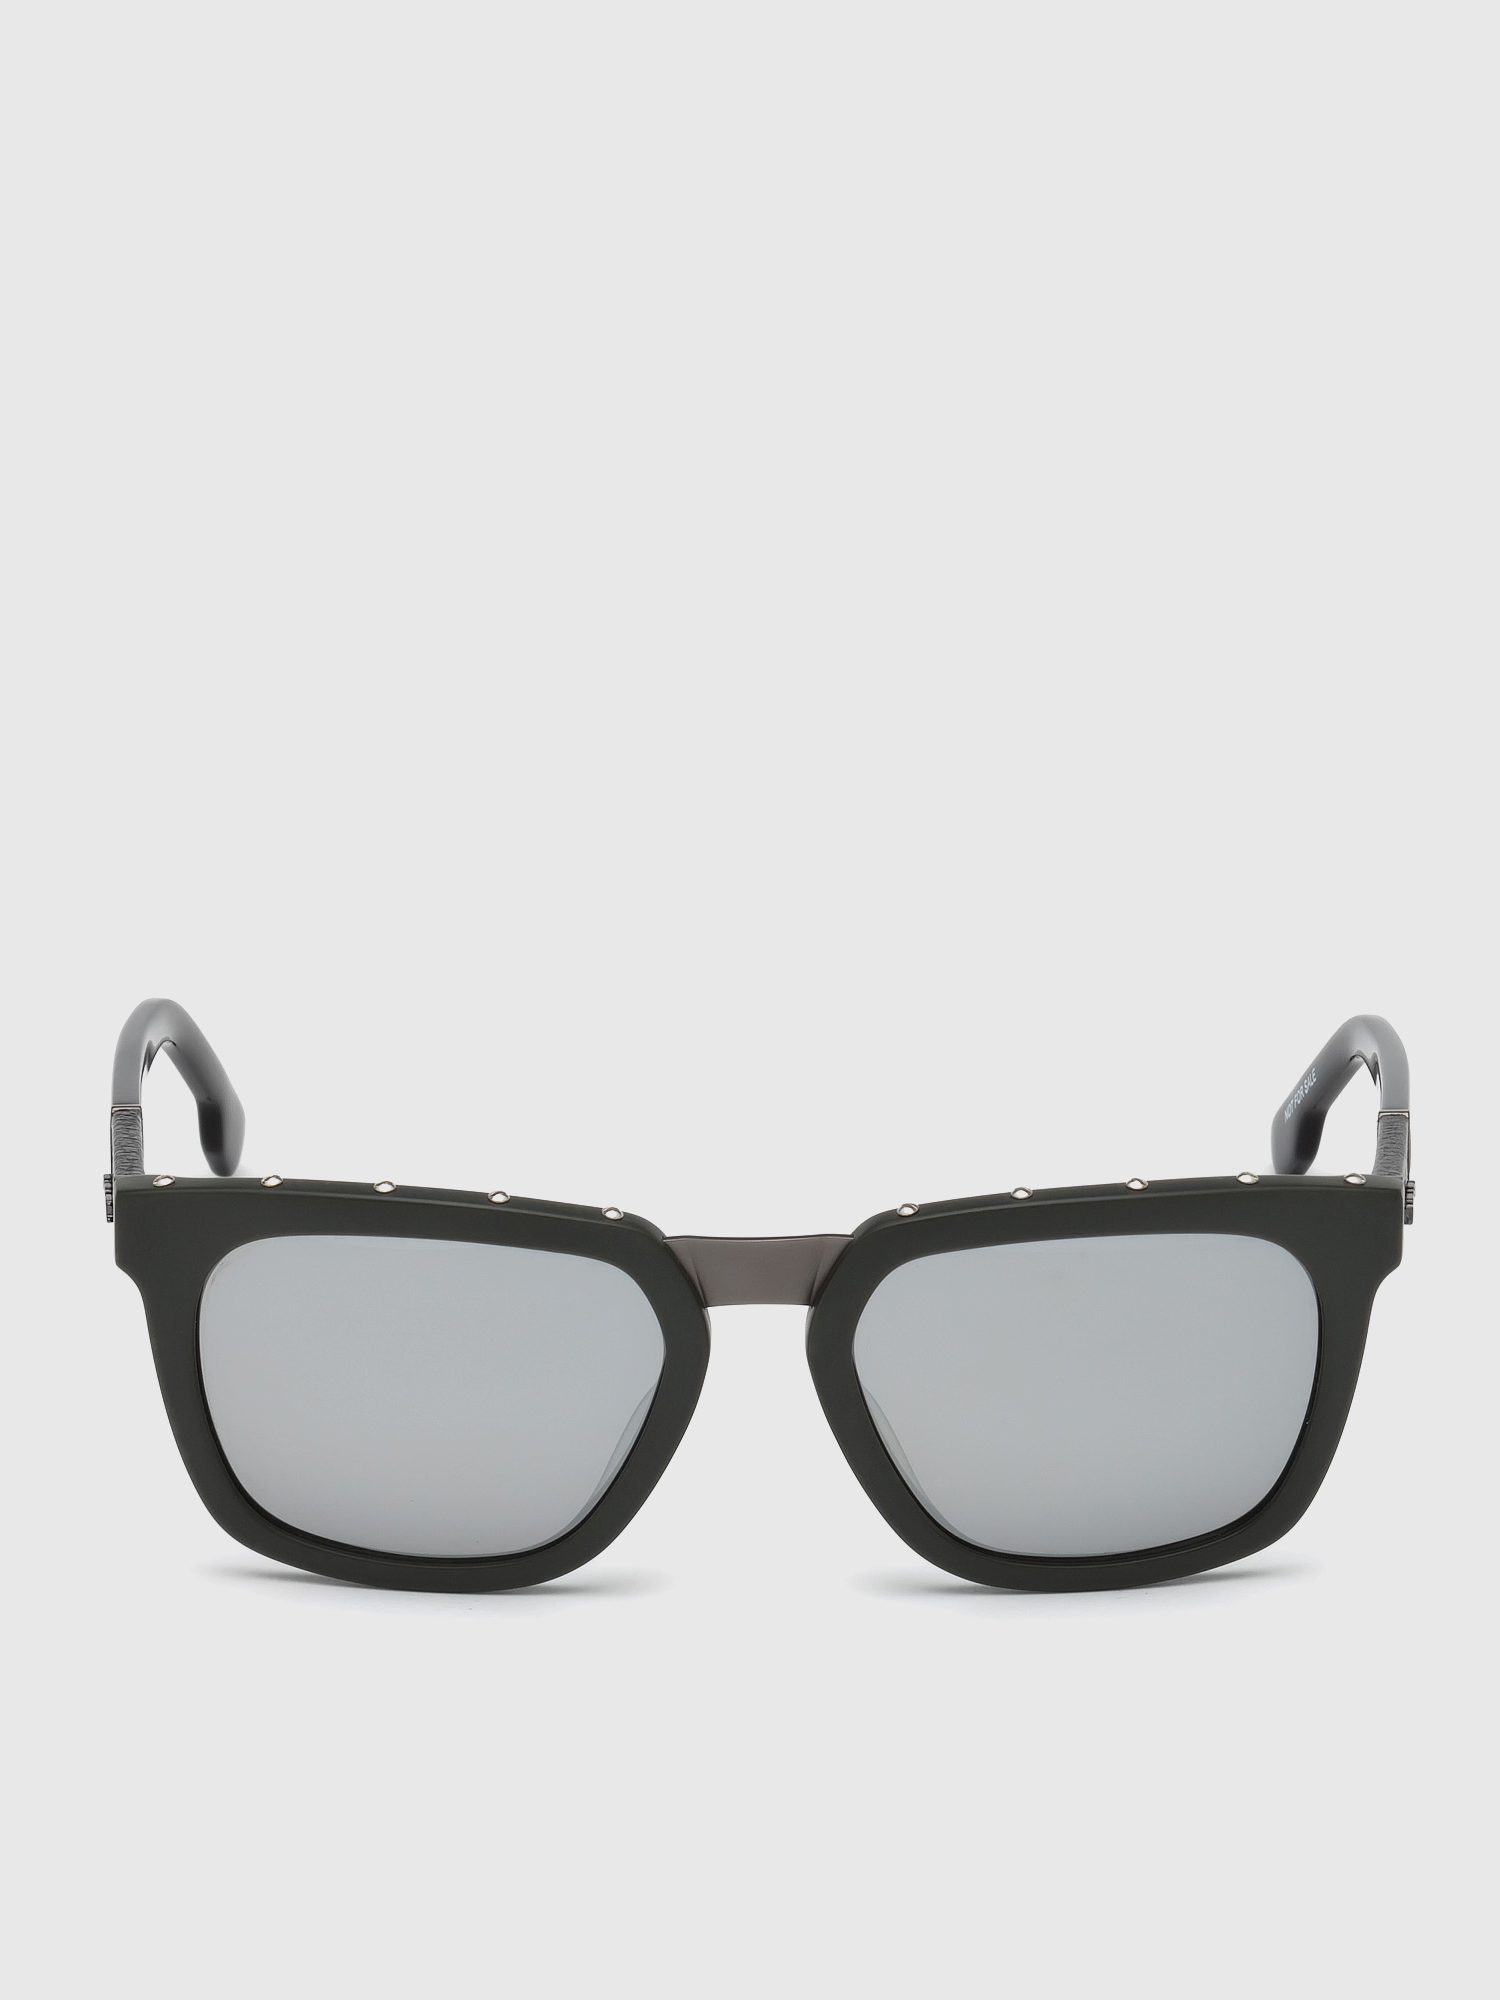 Diesel - DL0212, Military Green - Sunglasses - Image 1